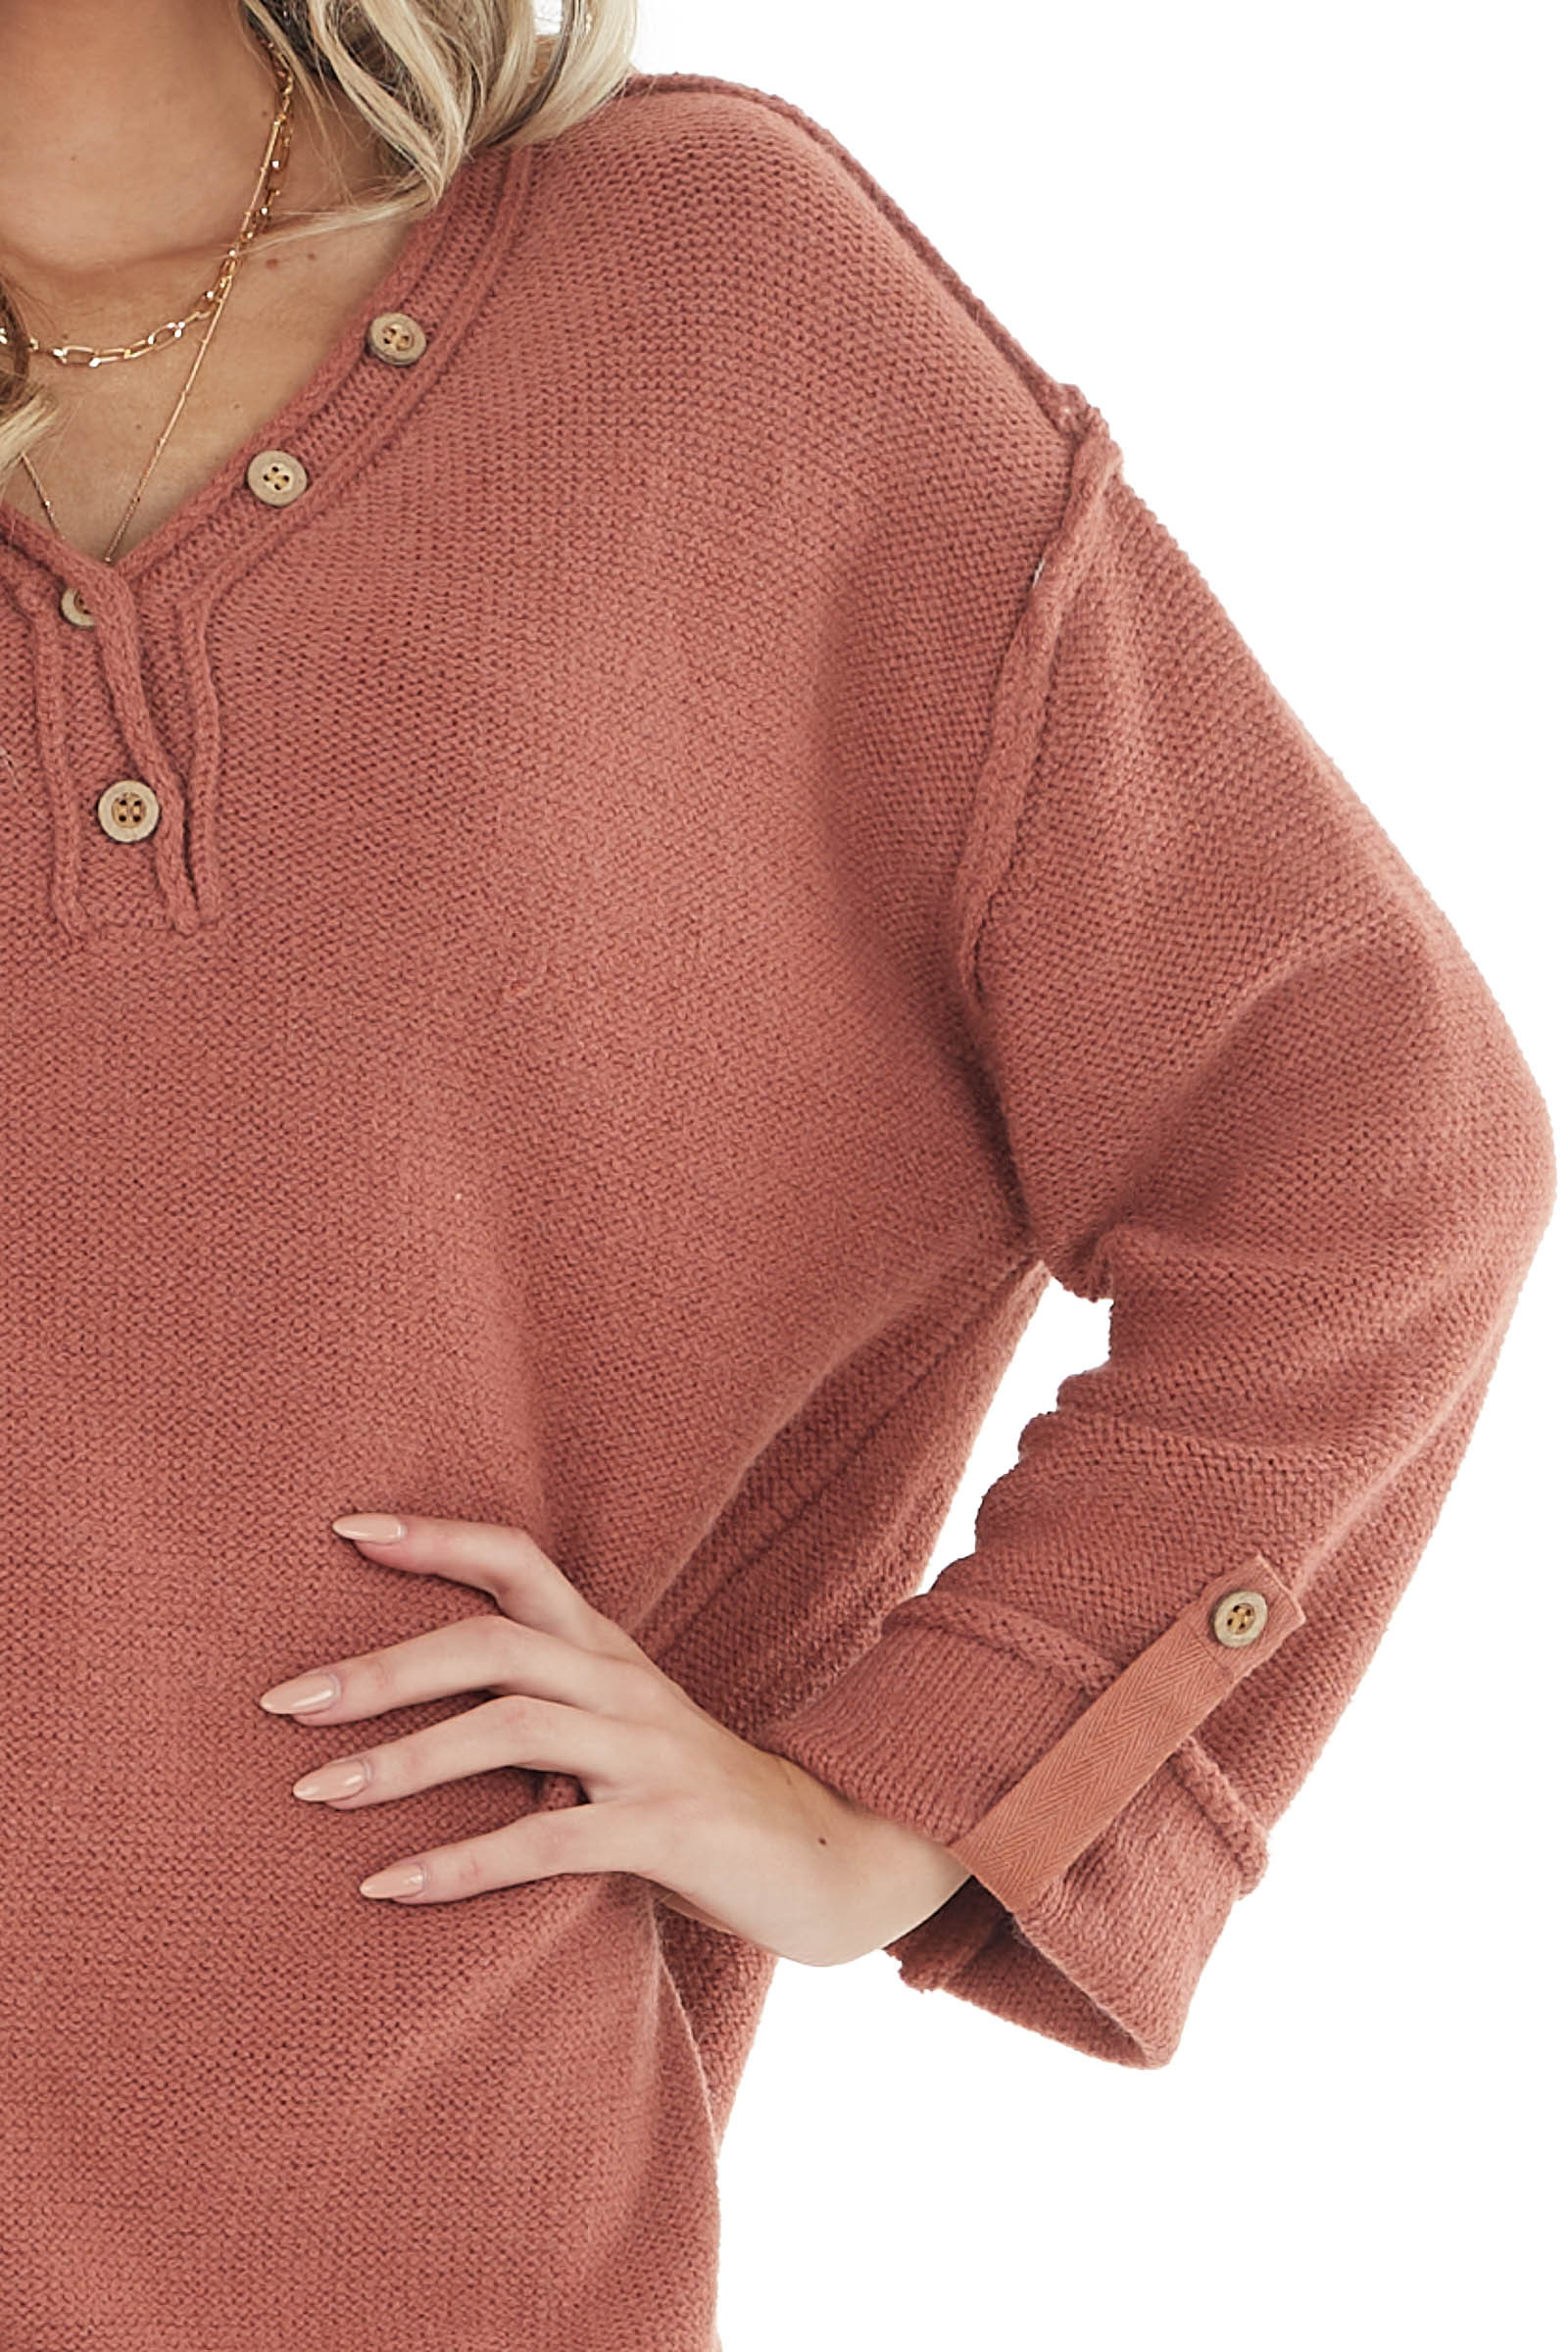 Tawny Long Sleeve V Neck Knit Sweater with Button Details